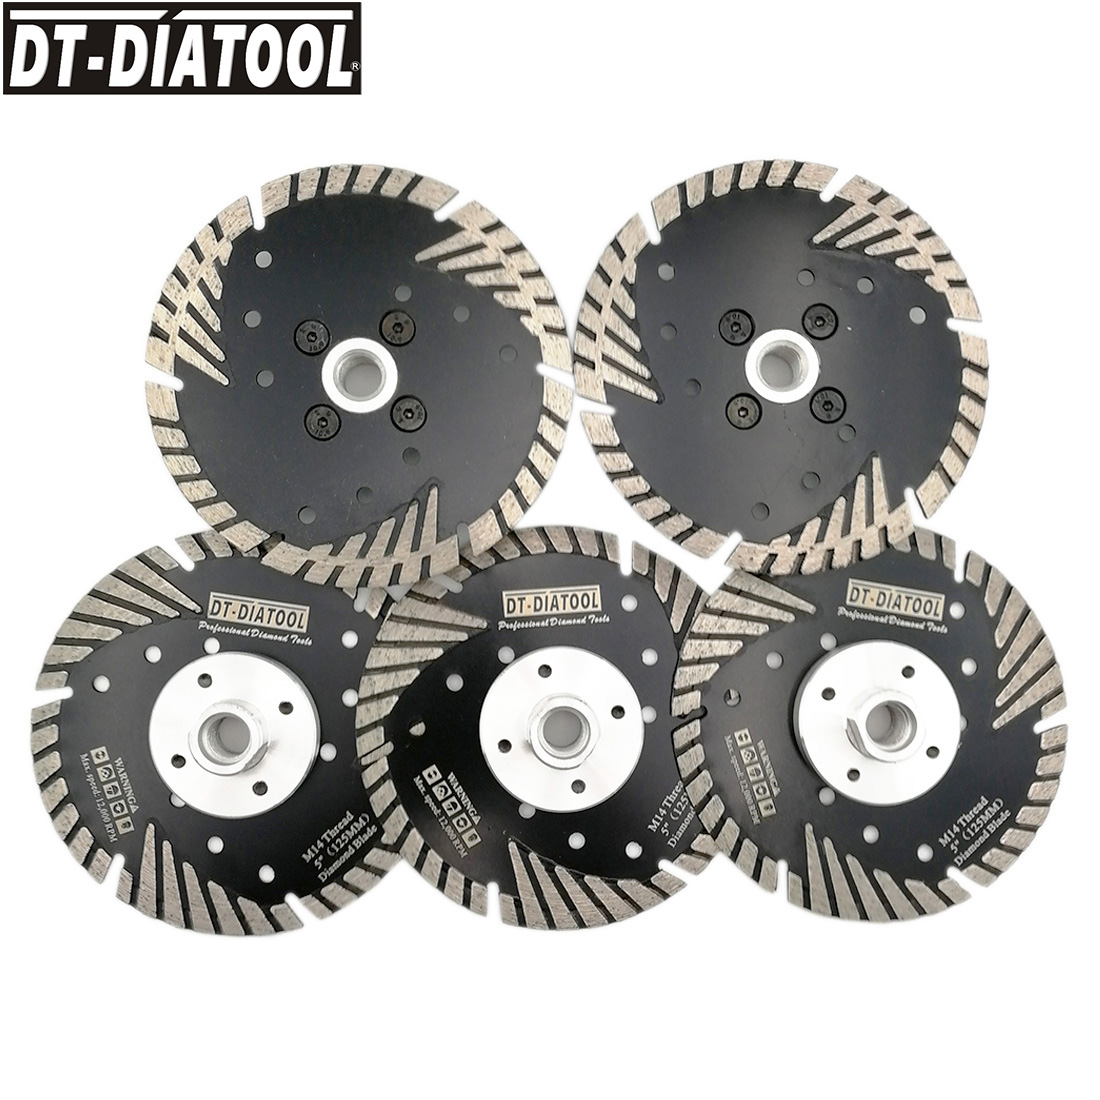 DT-DIATOOL 5pieces 125mm/5